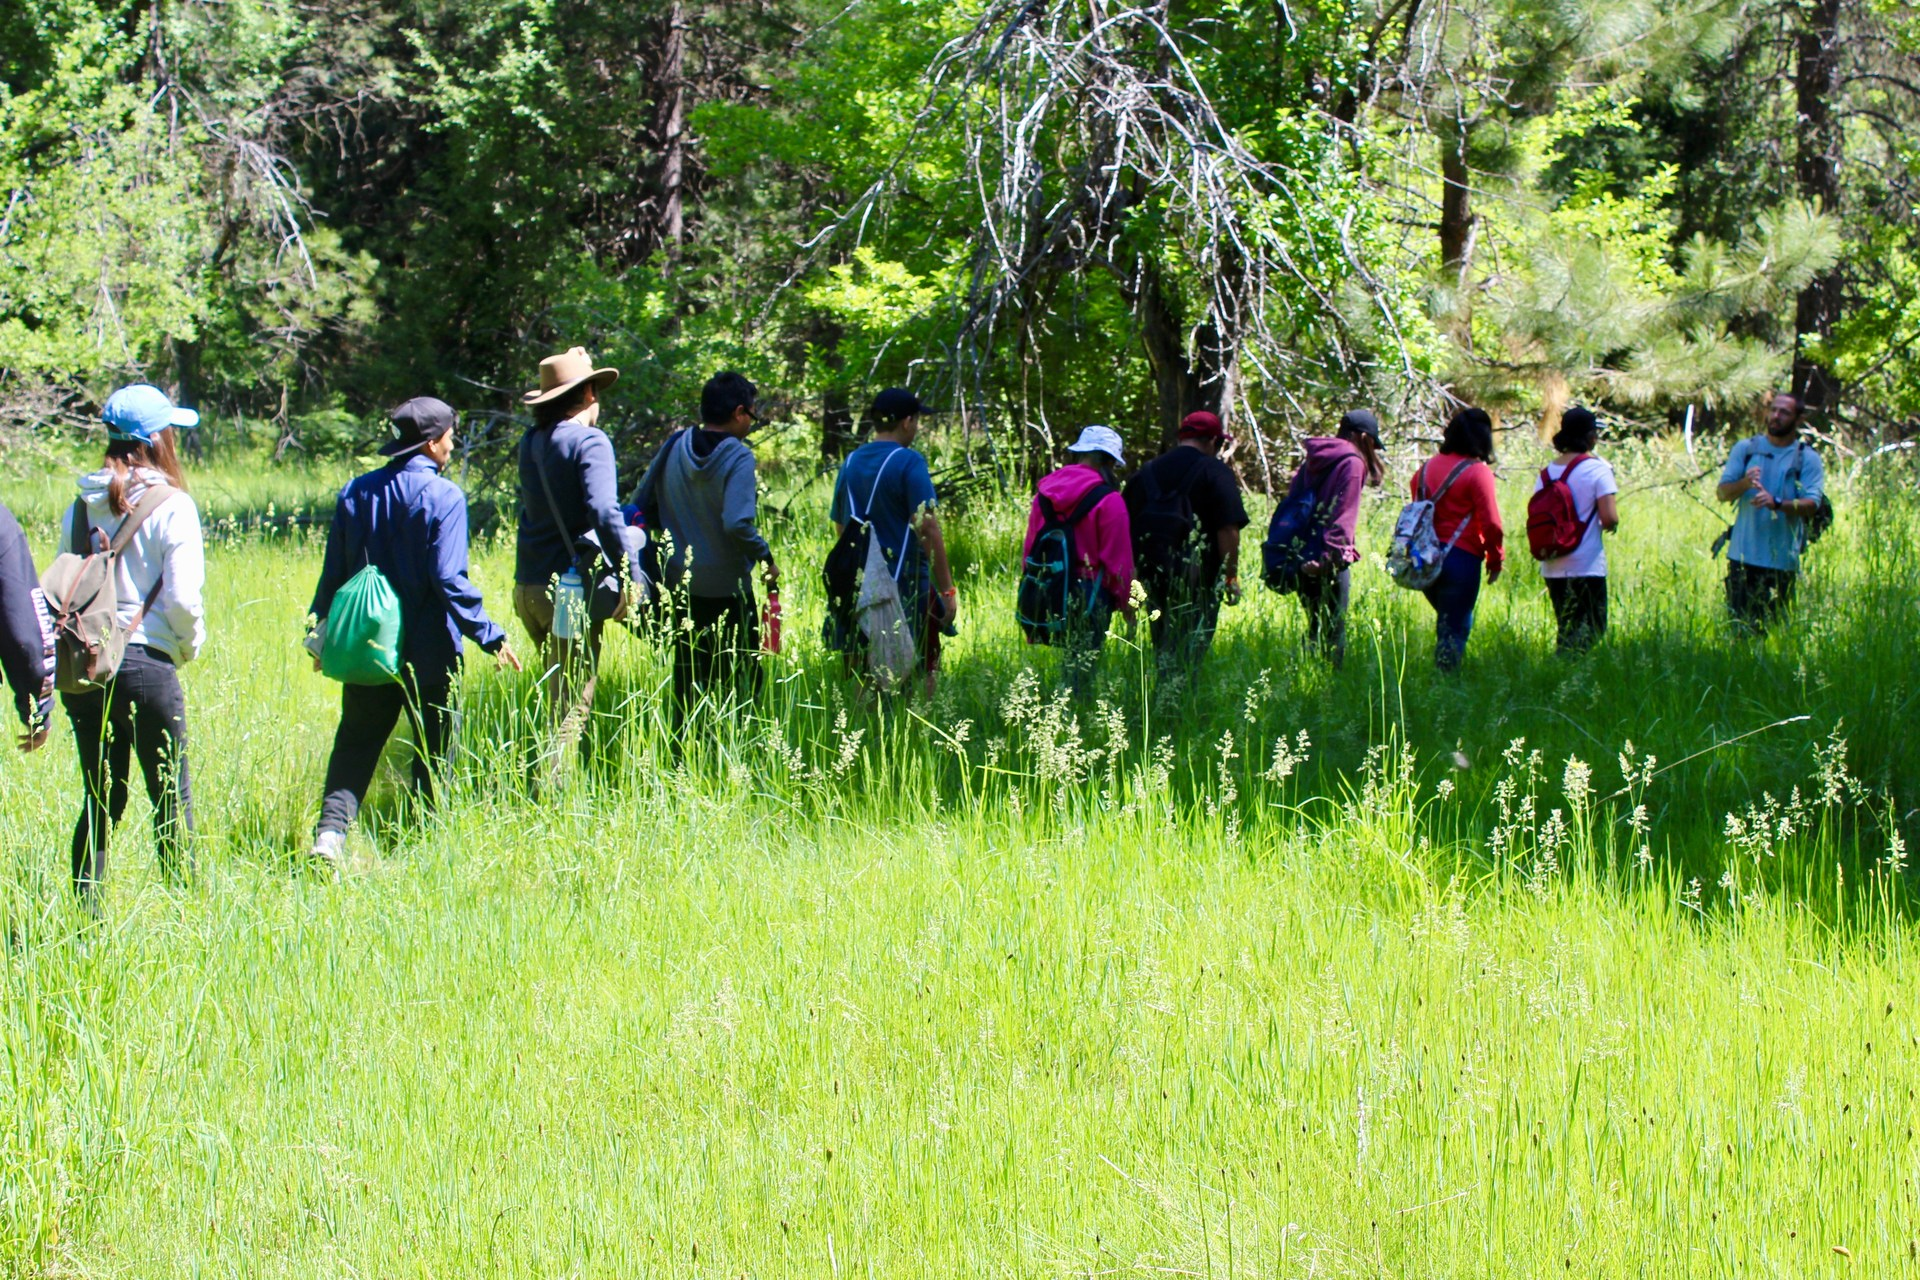 Students hike through a field